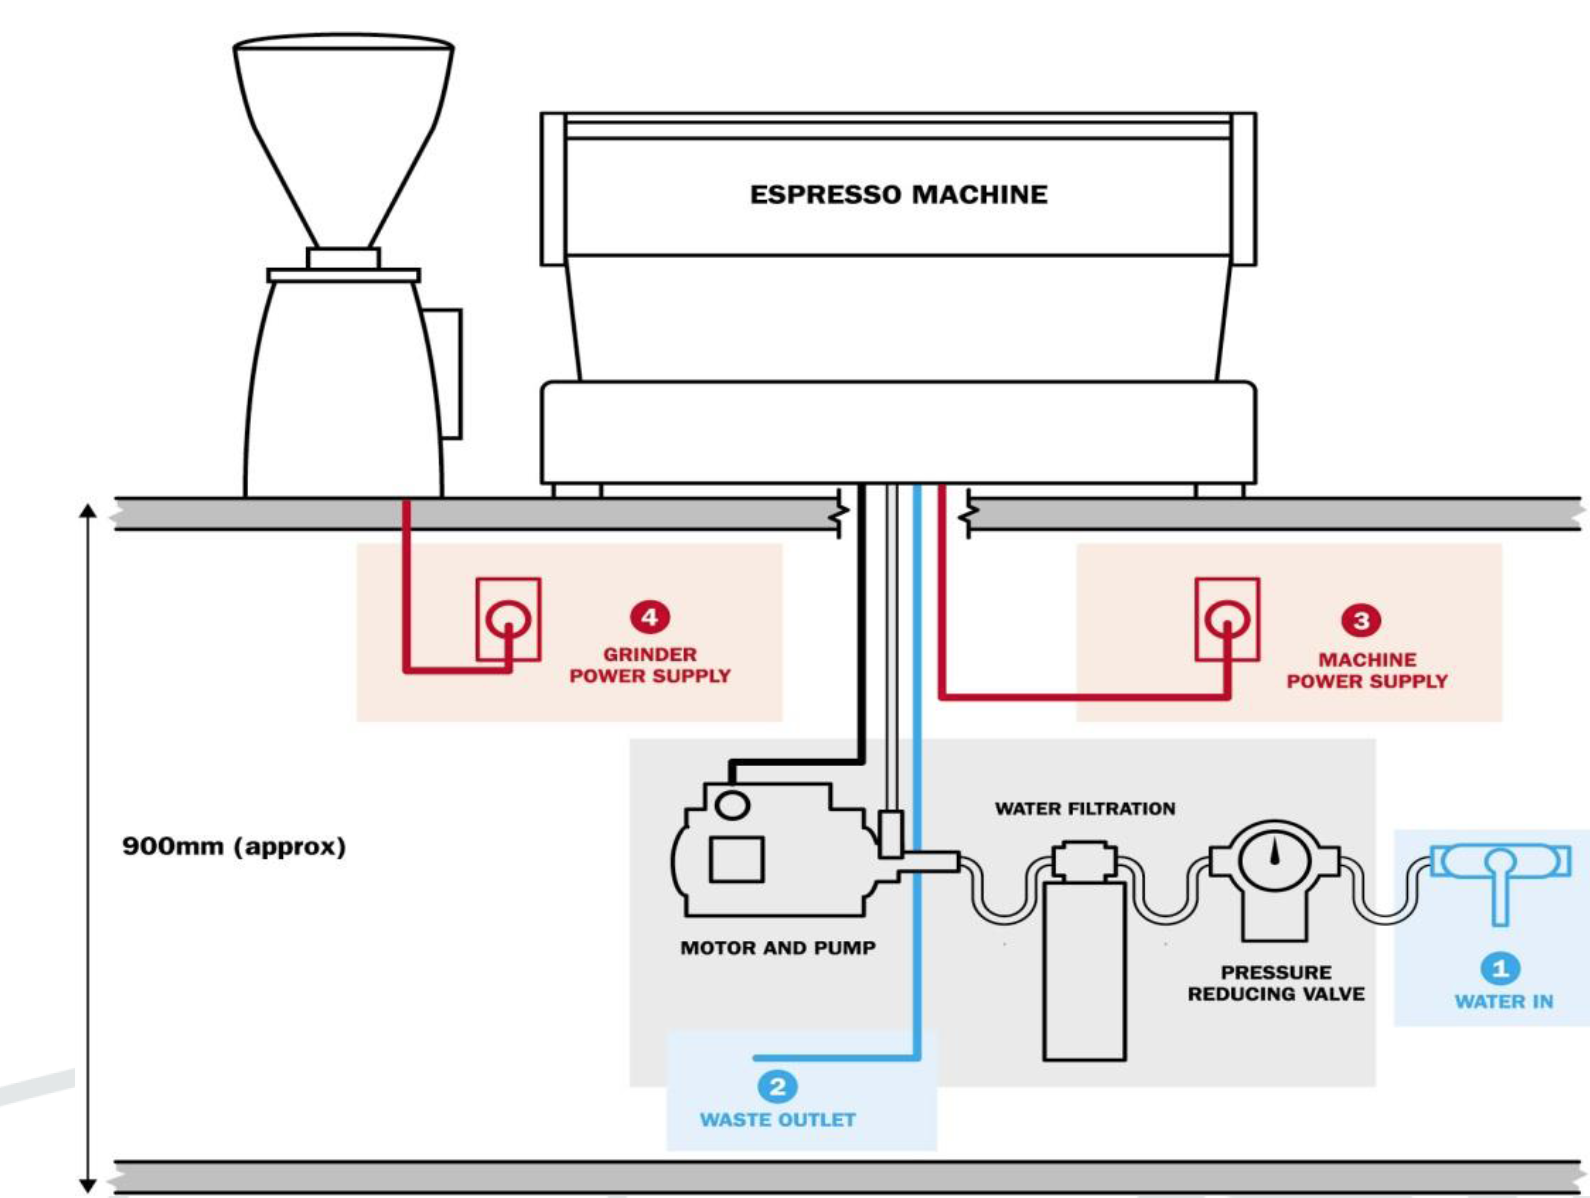 installation requirements espresso machine talk coffee rh talkcoffee com au